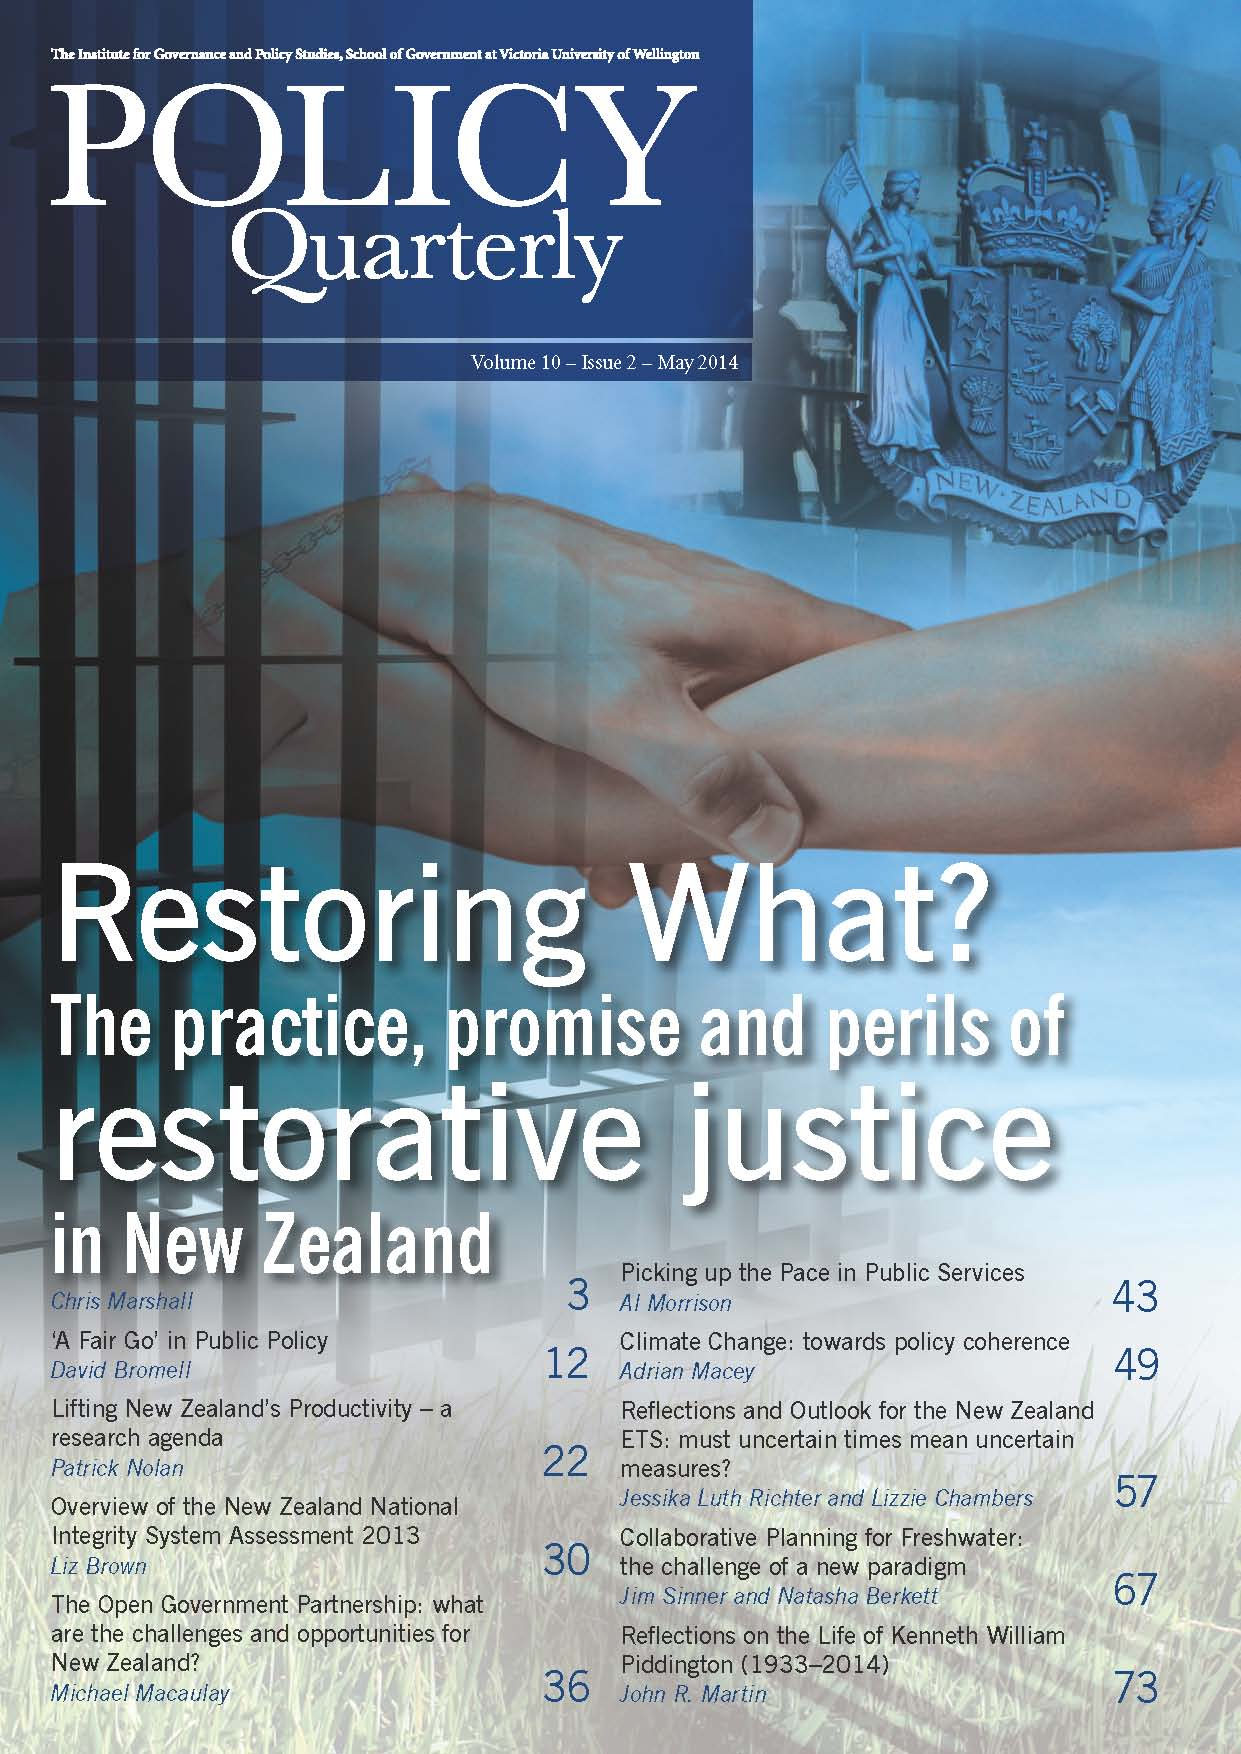 Policy Quarterly volume 10 number 2 2014